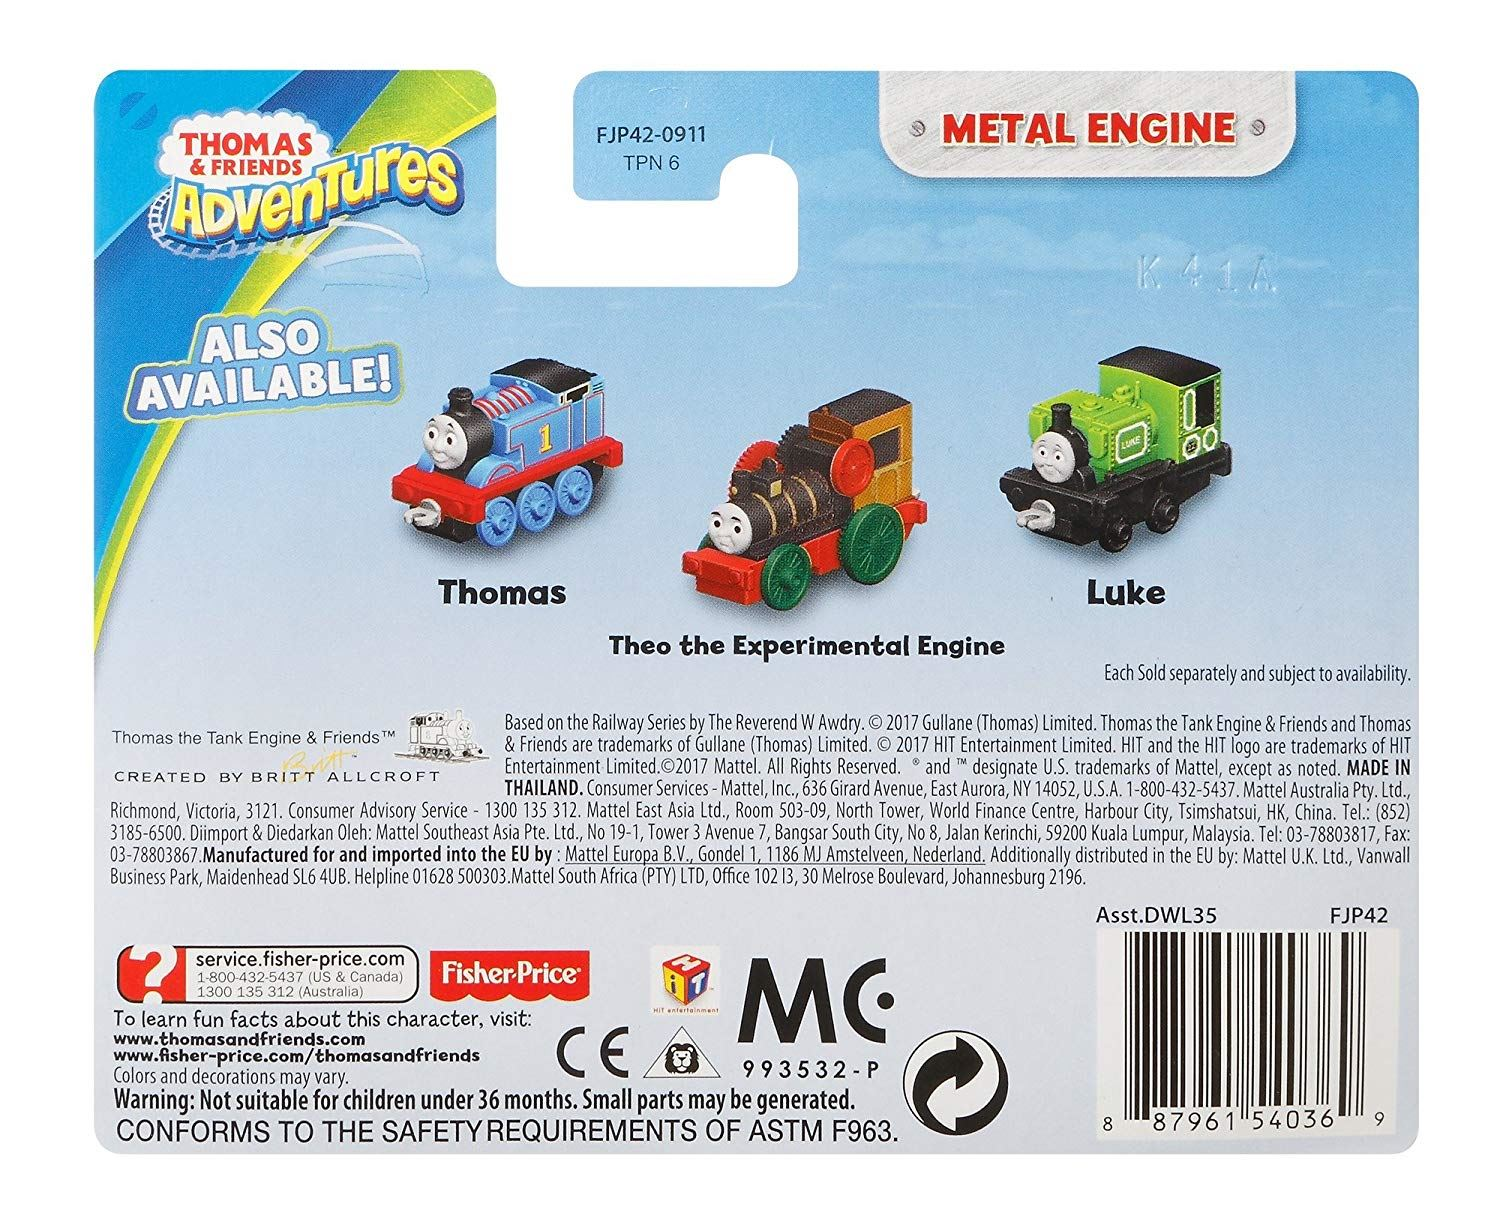 Thomas-amp-Friends-Adventures-Ferdinand-lexi-Shane-Dash-Huge-Bill-Trains Indexbild 6